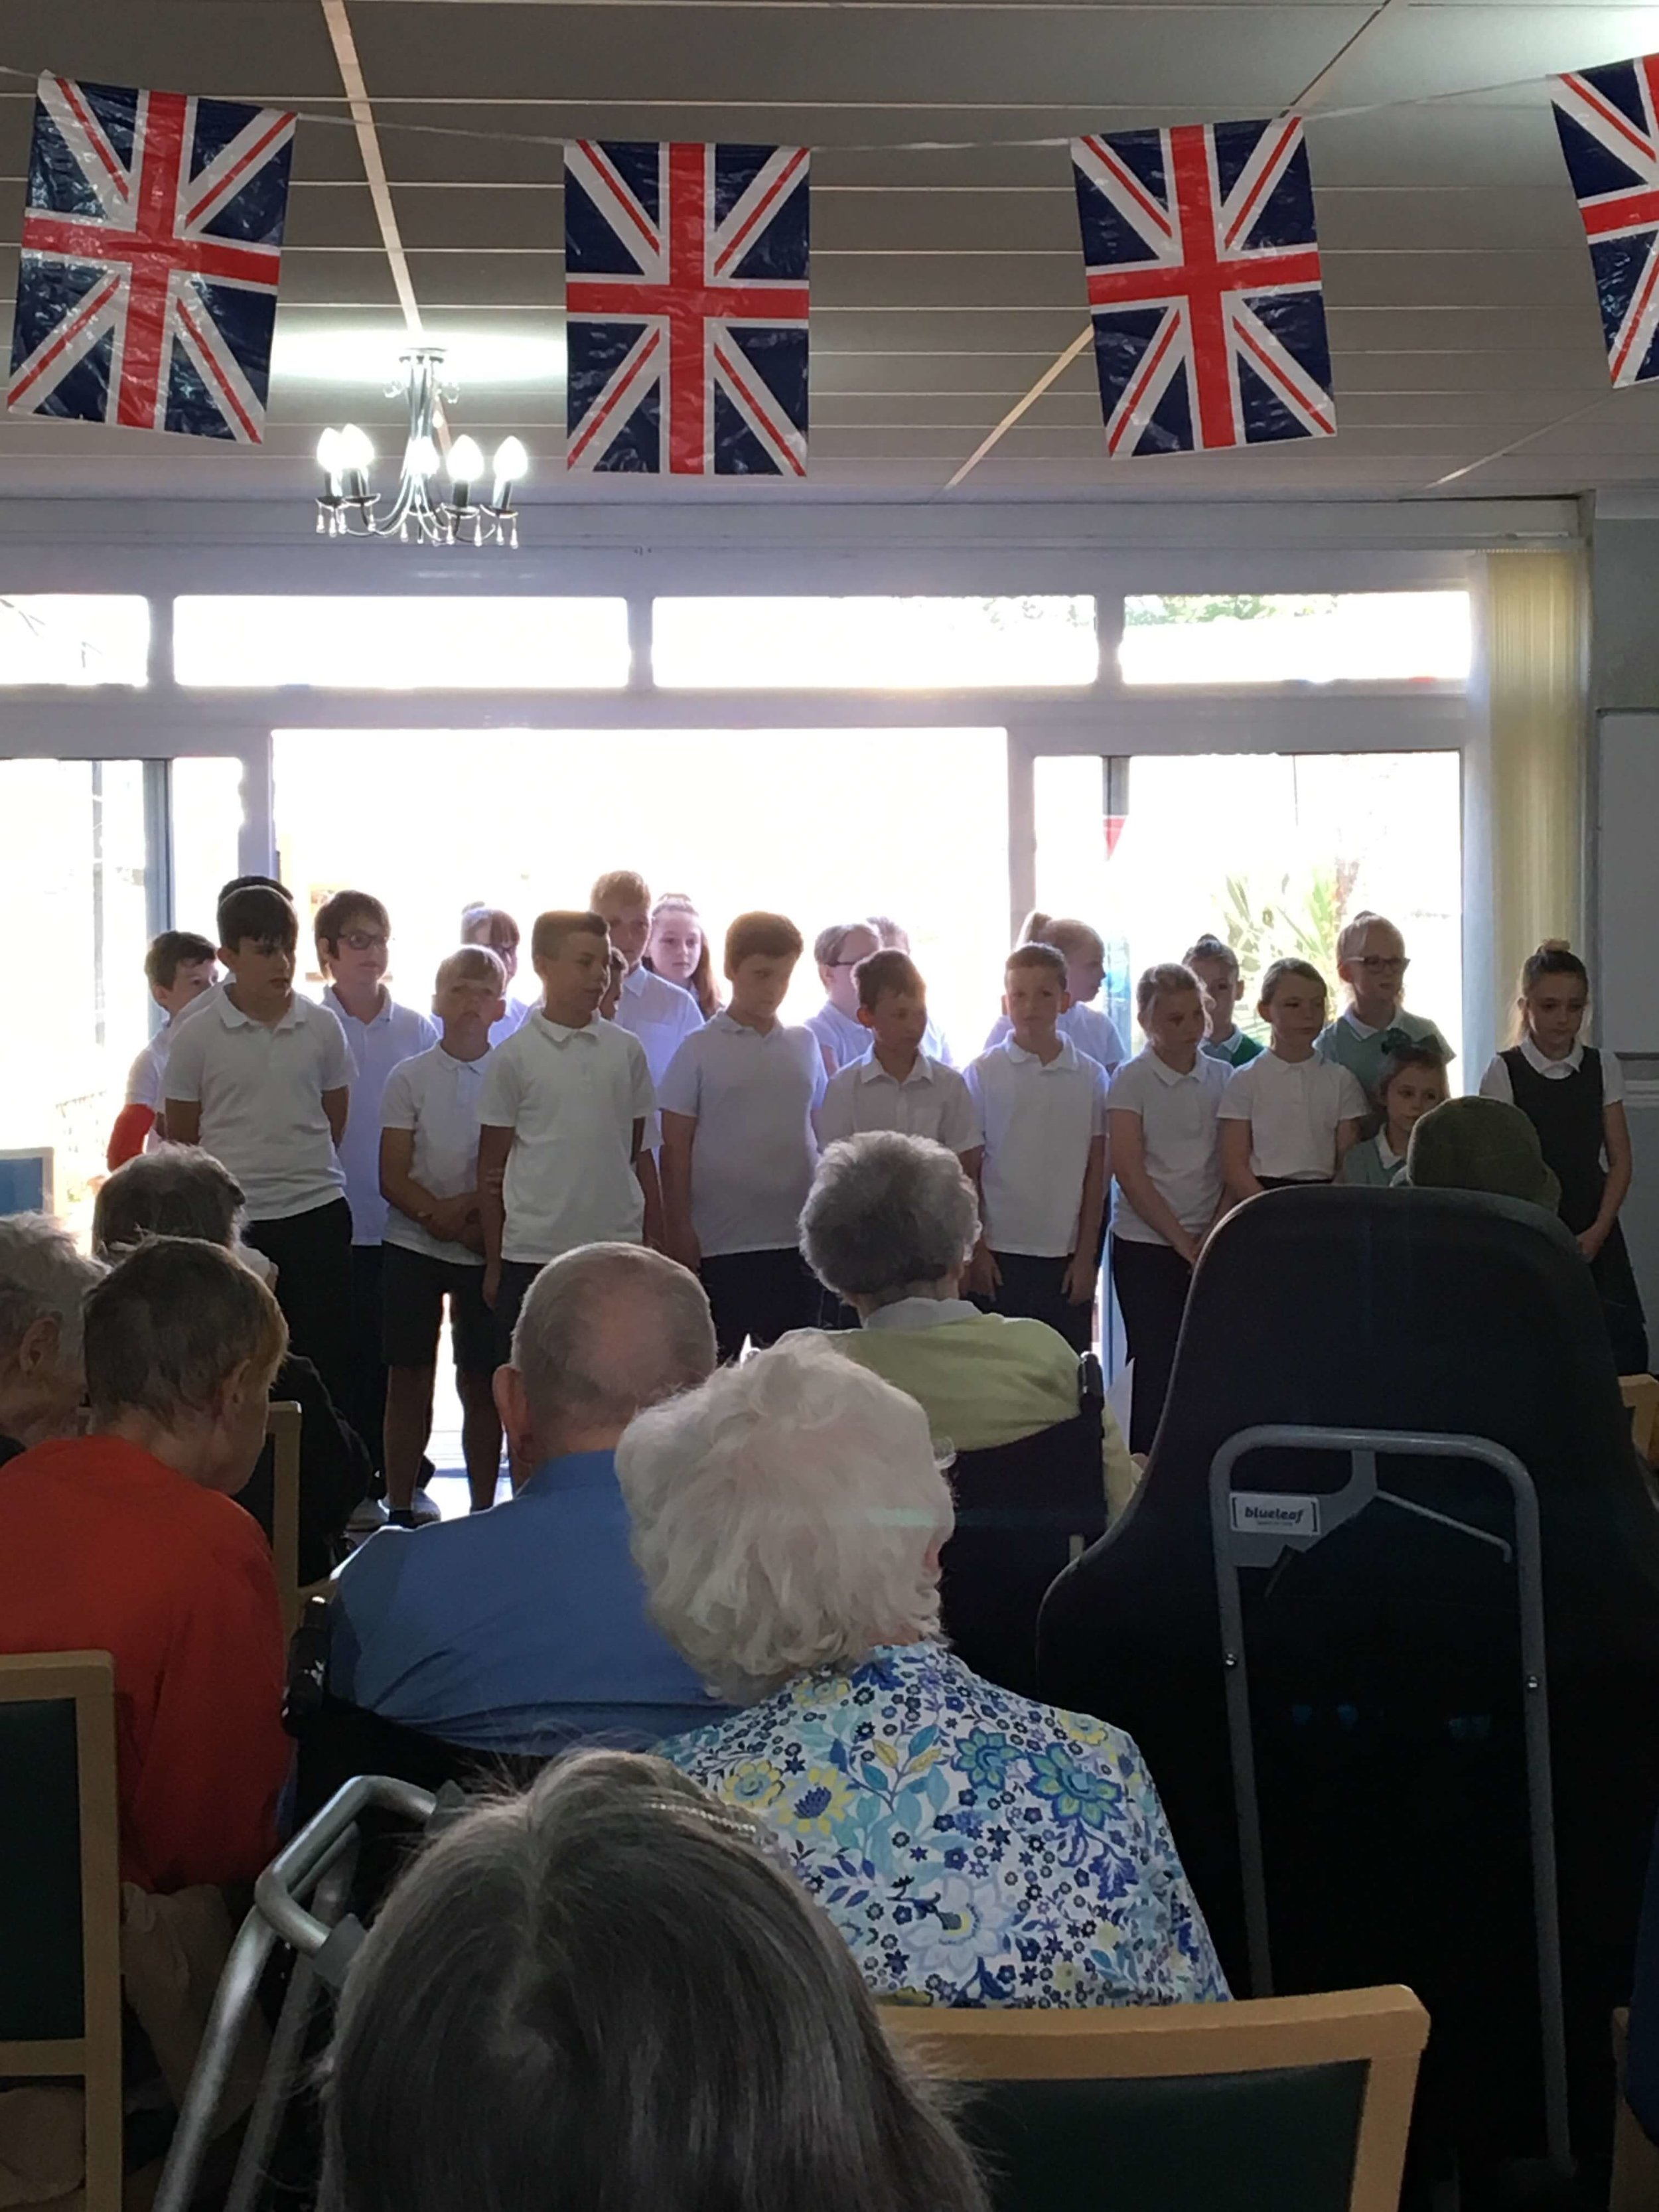 sing off at spring field open day.jpg